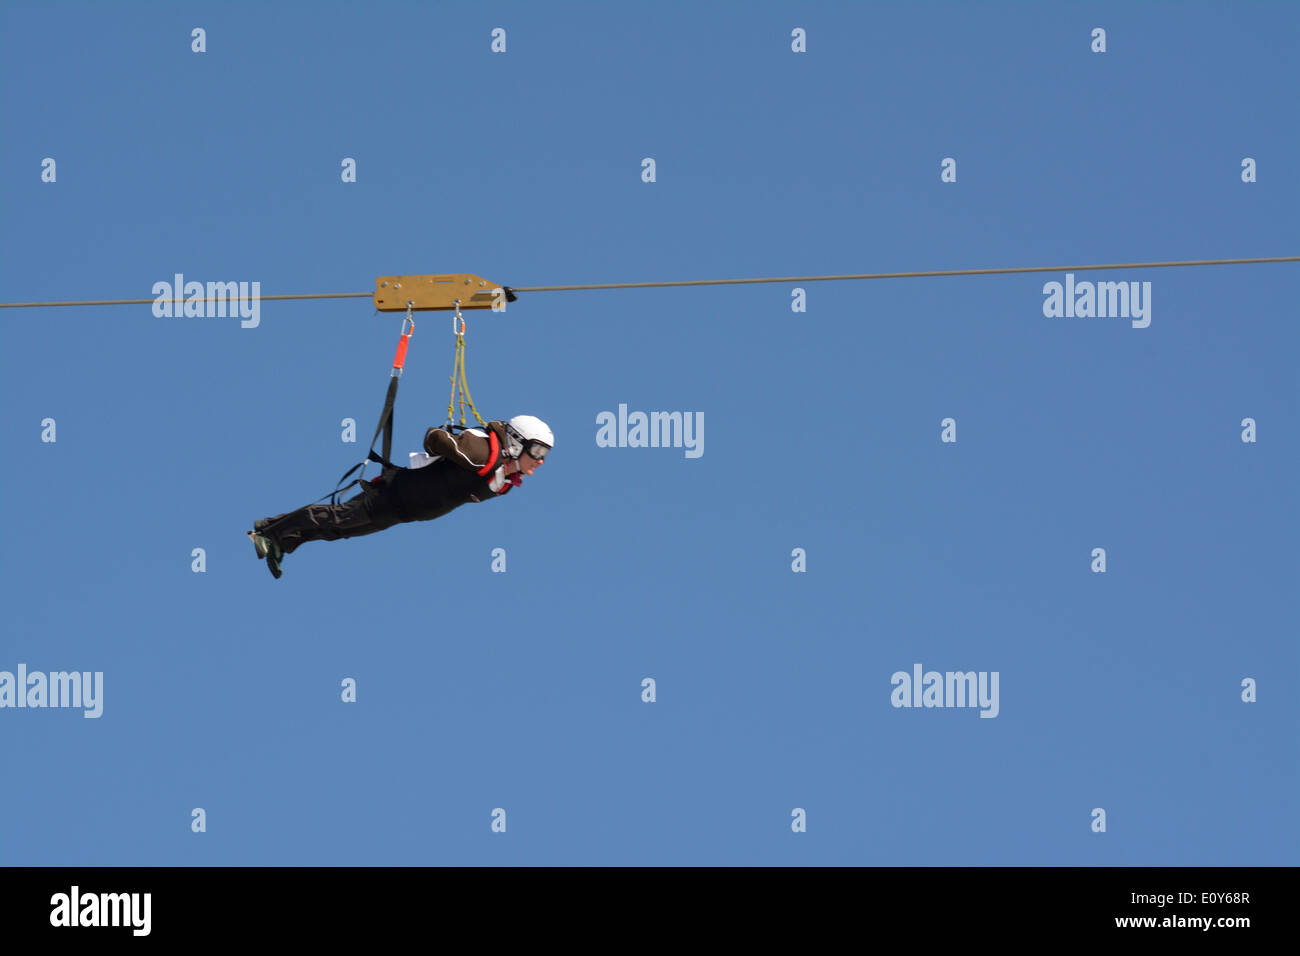 4 man zip wire wales rf transmitter and receiver block diagram stock photos images alamy person on line image